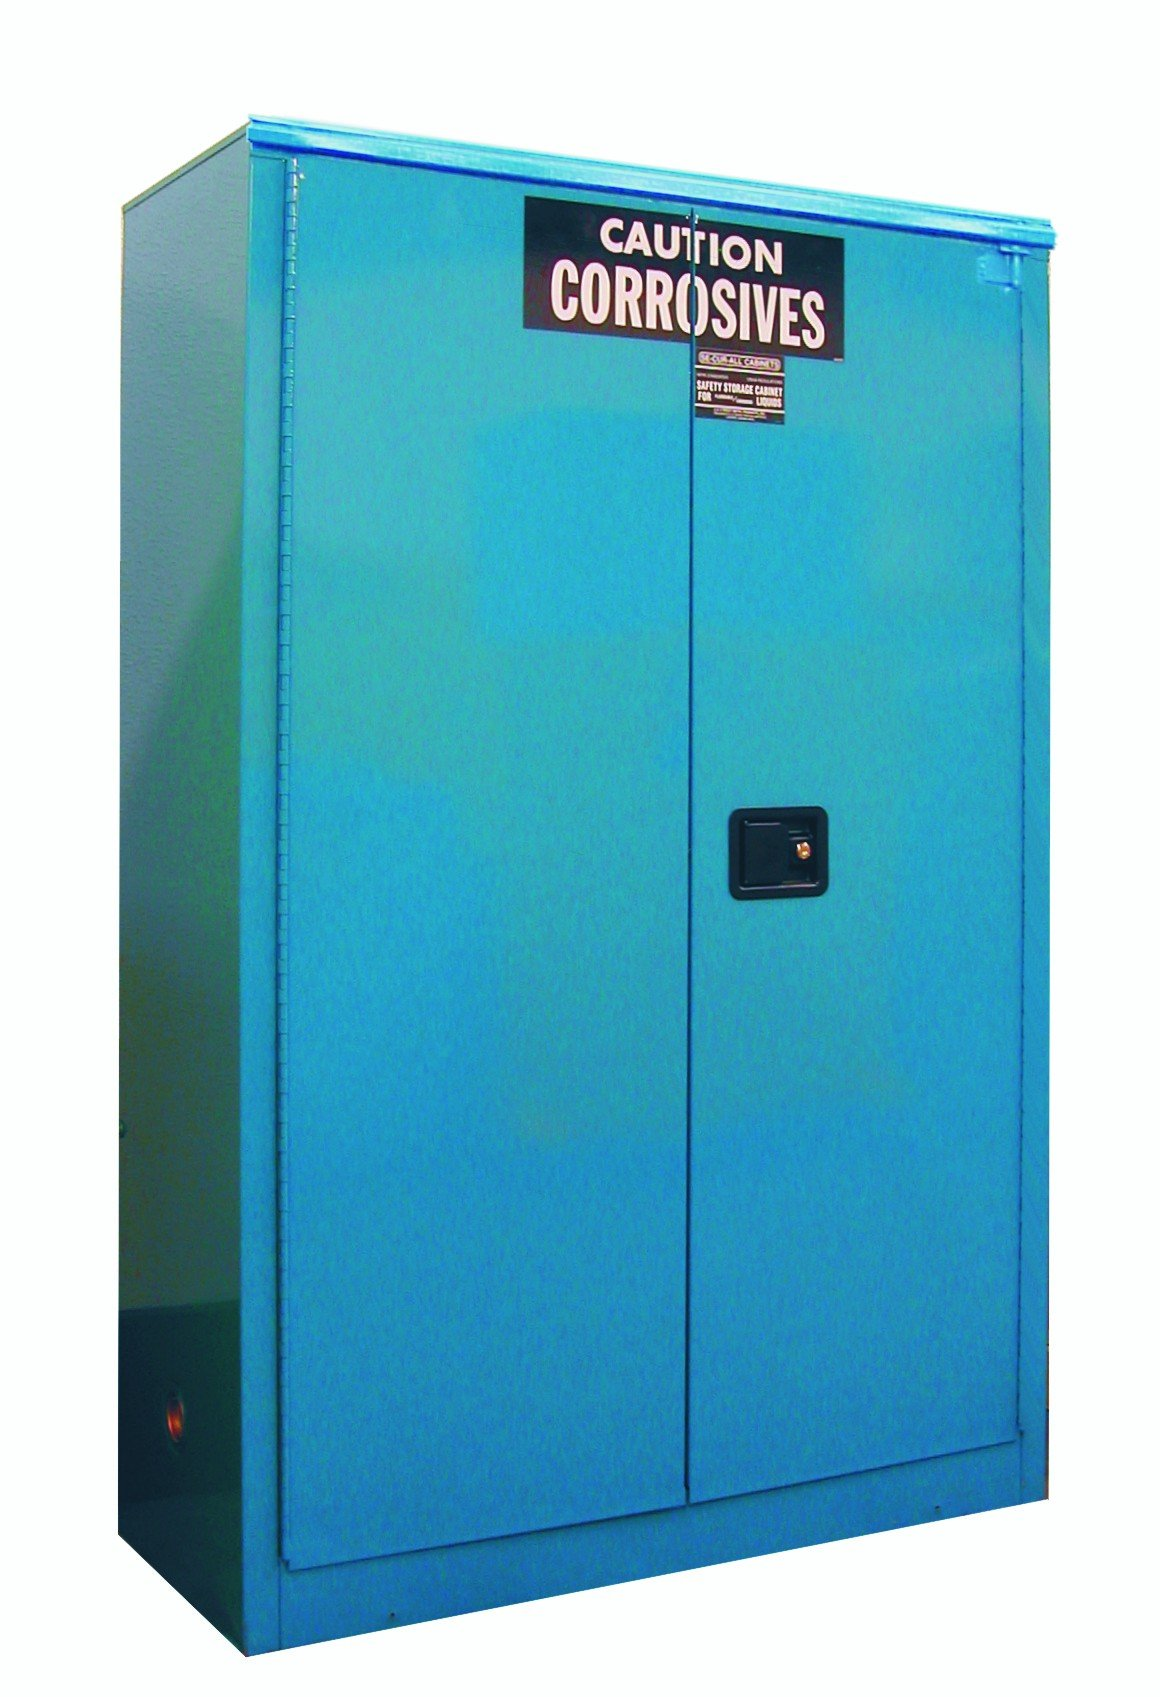 C245 - Acid/Corrosive Storage Cabinet - 45 Gal. Self-Close, Self-Latch Sliding Door